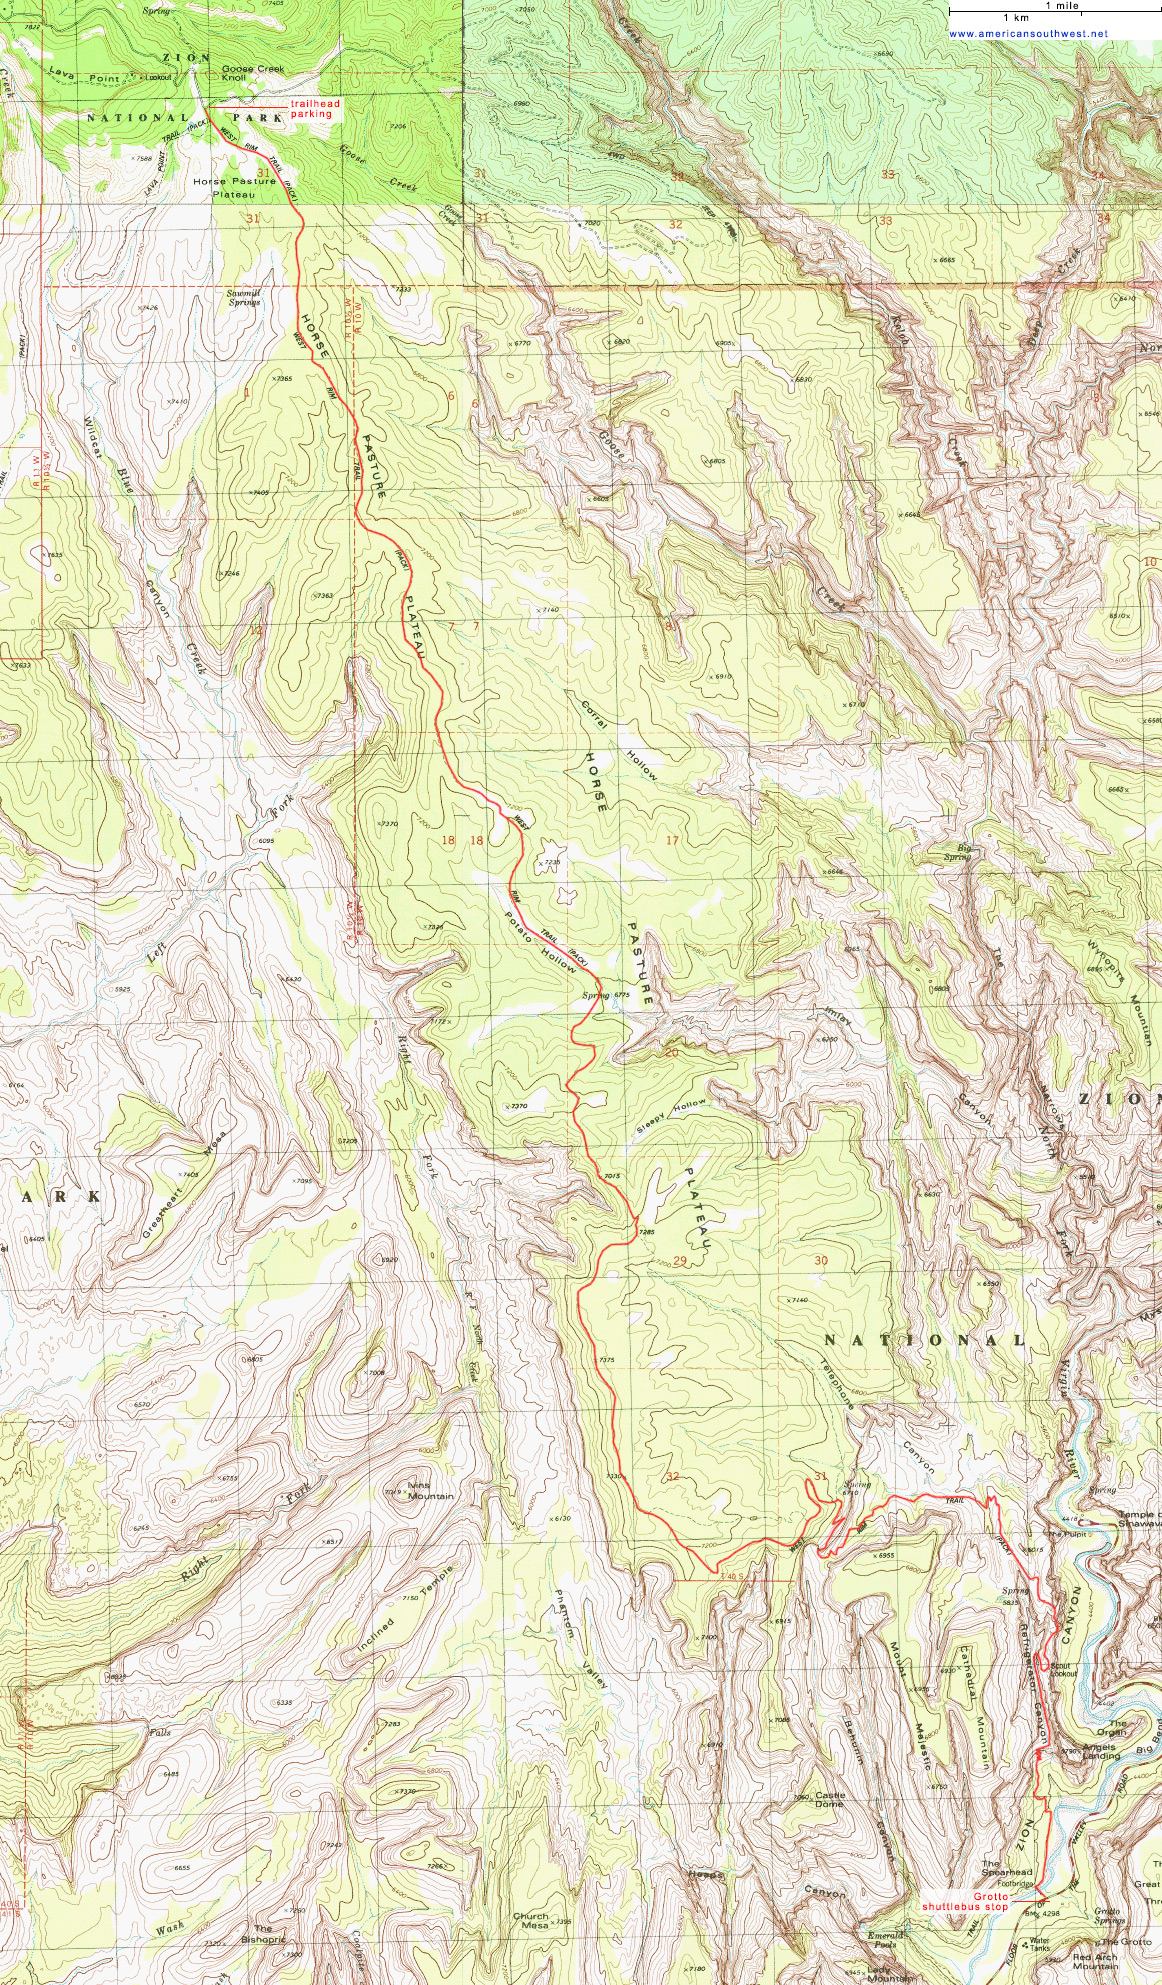 Topographic Map of the West Rim Trail, Zion National Park, Utah on